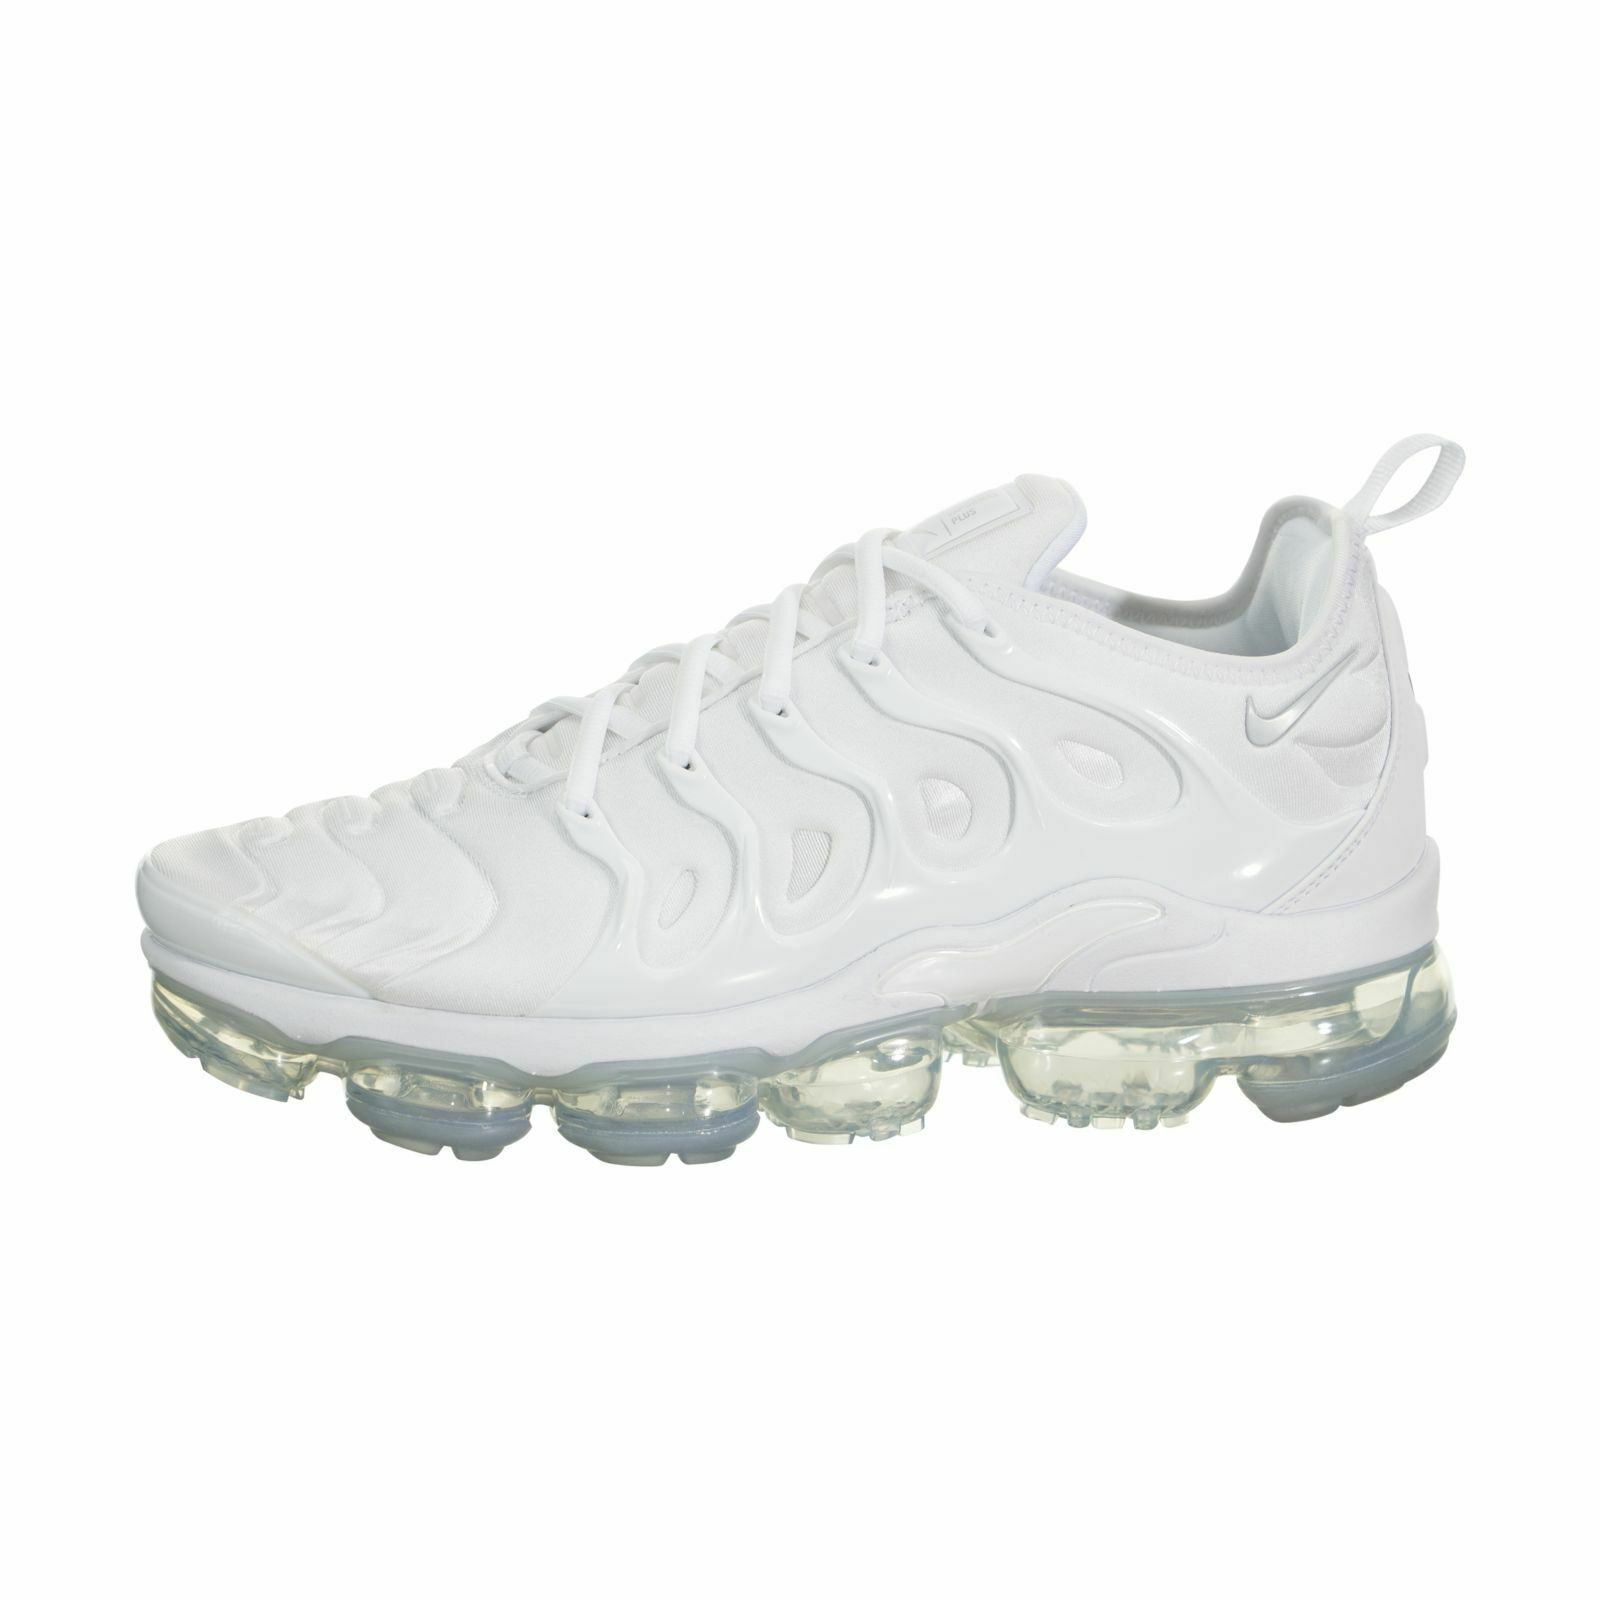 save off 60121 35472 Nike Air Vapormax Plus White Pure Platinum Men Running Shoes SNEAKERS  924453-100 10.5